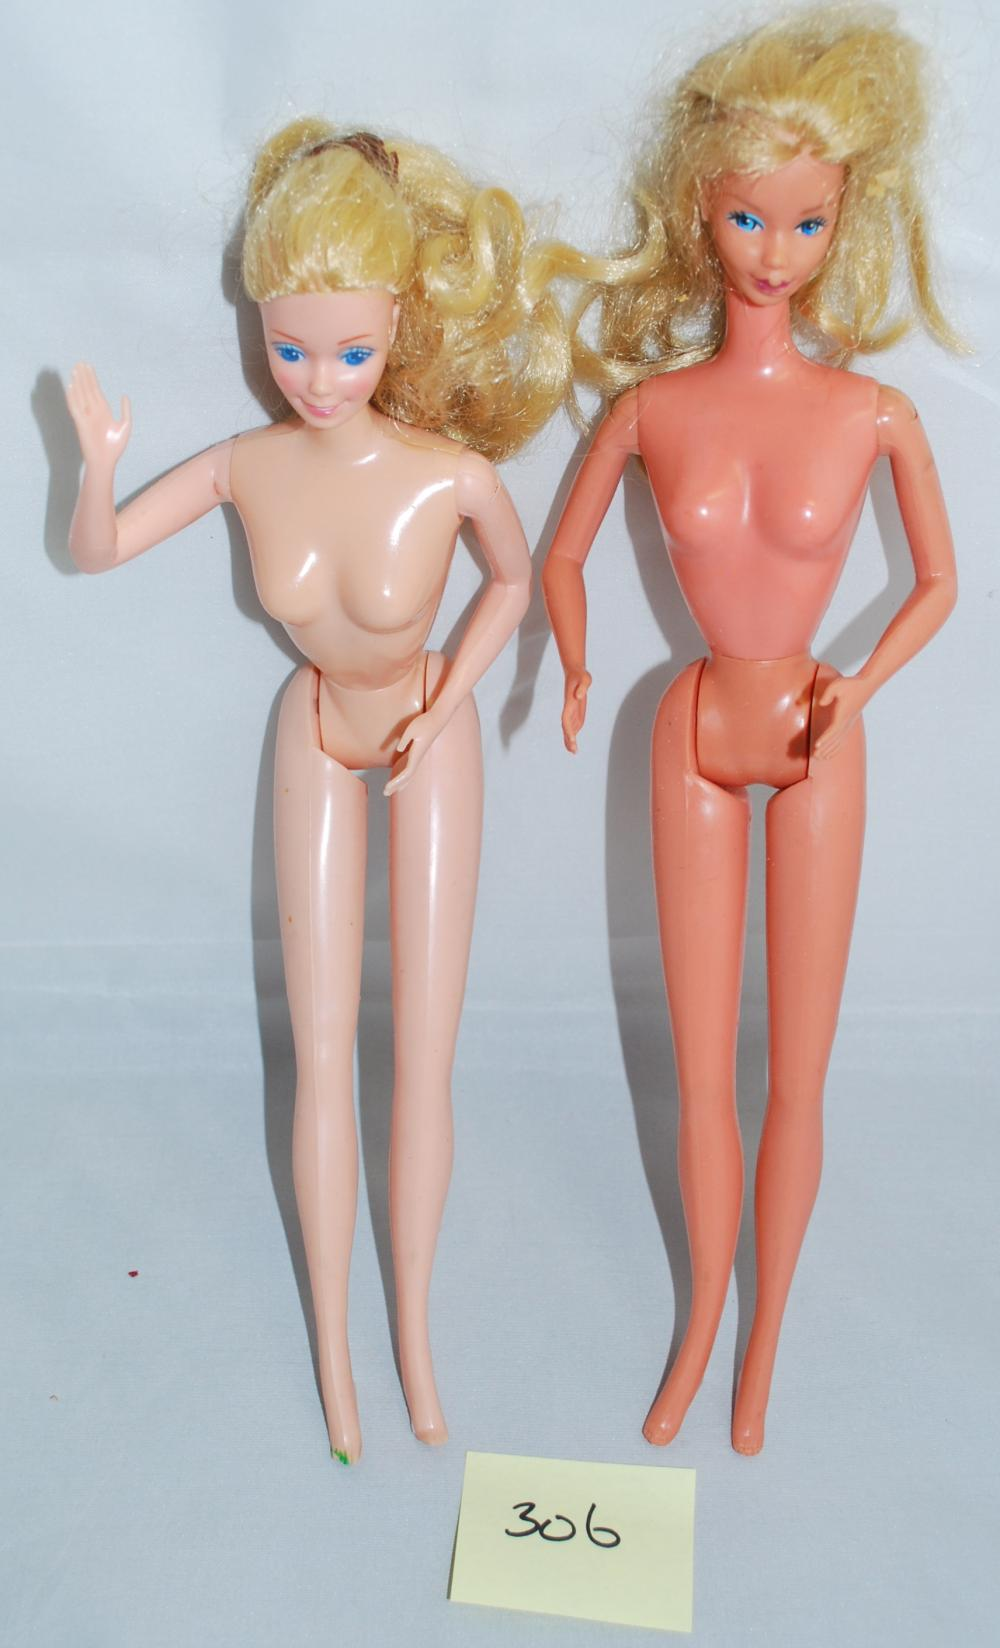 Vintage 1966 Blonde Barbie Dolls